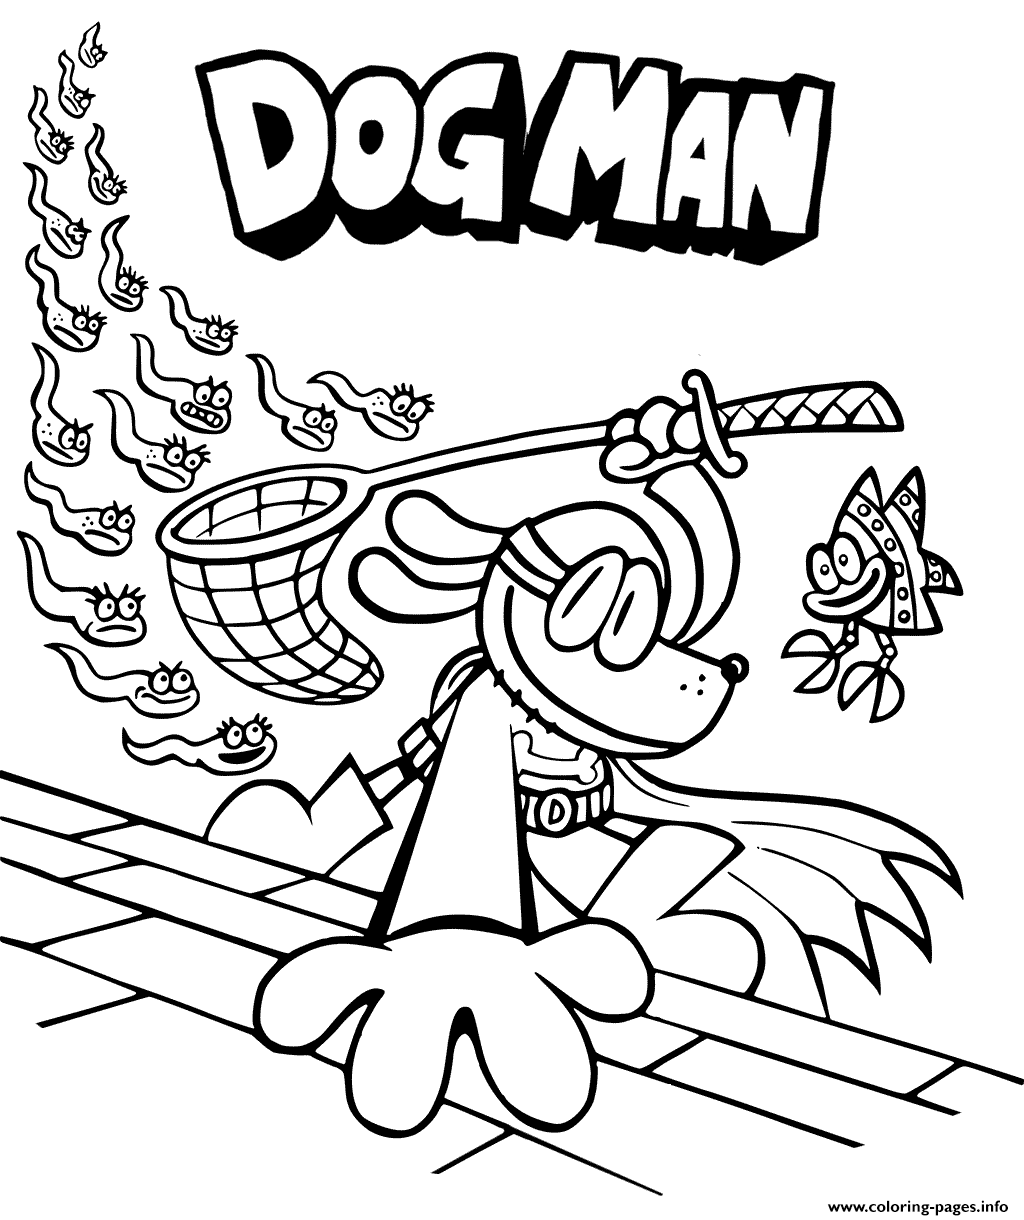 Dog Man Capture Fish Coloring Pages Printable